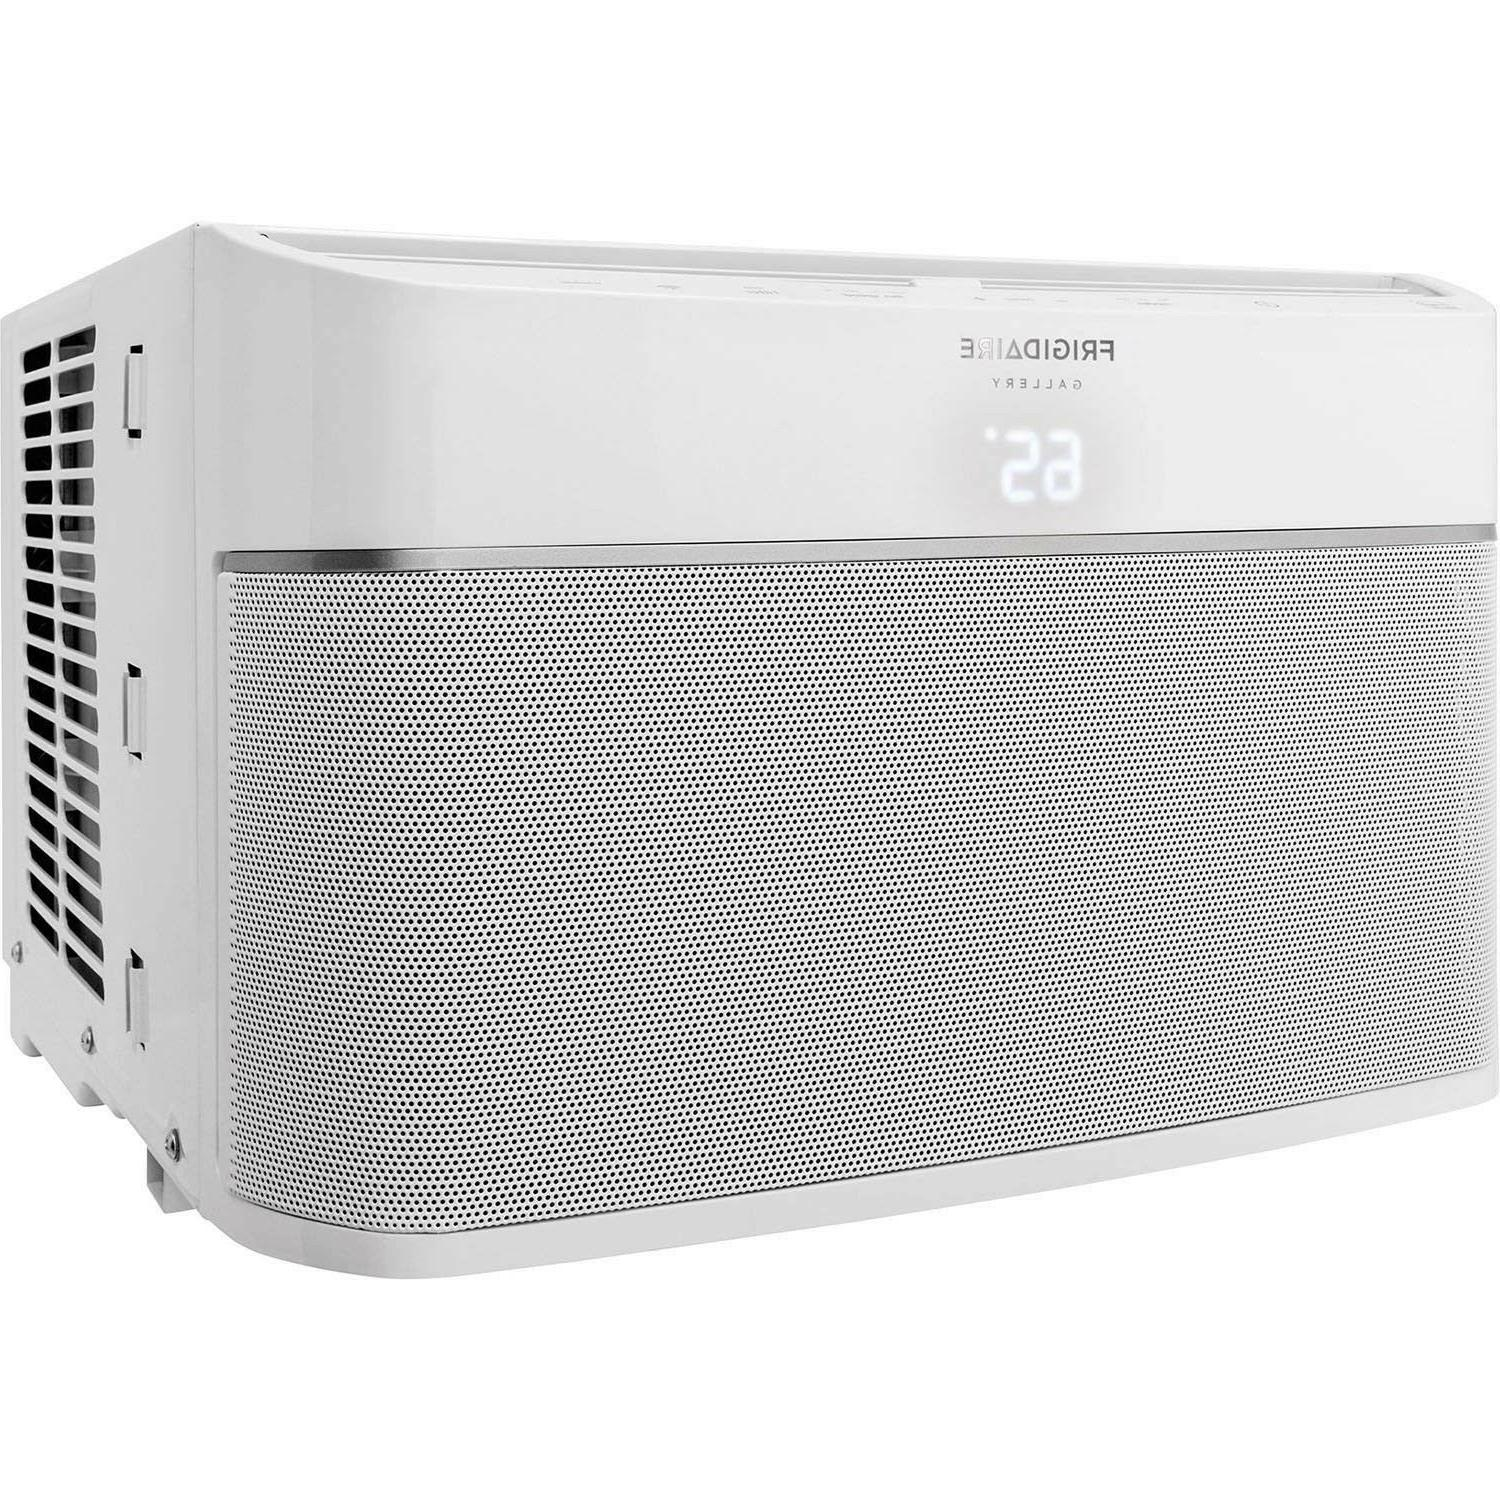 Frigidaire 8,000 Btu Window Air Conditioner, White